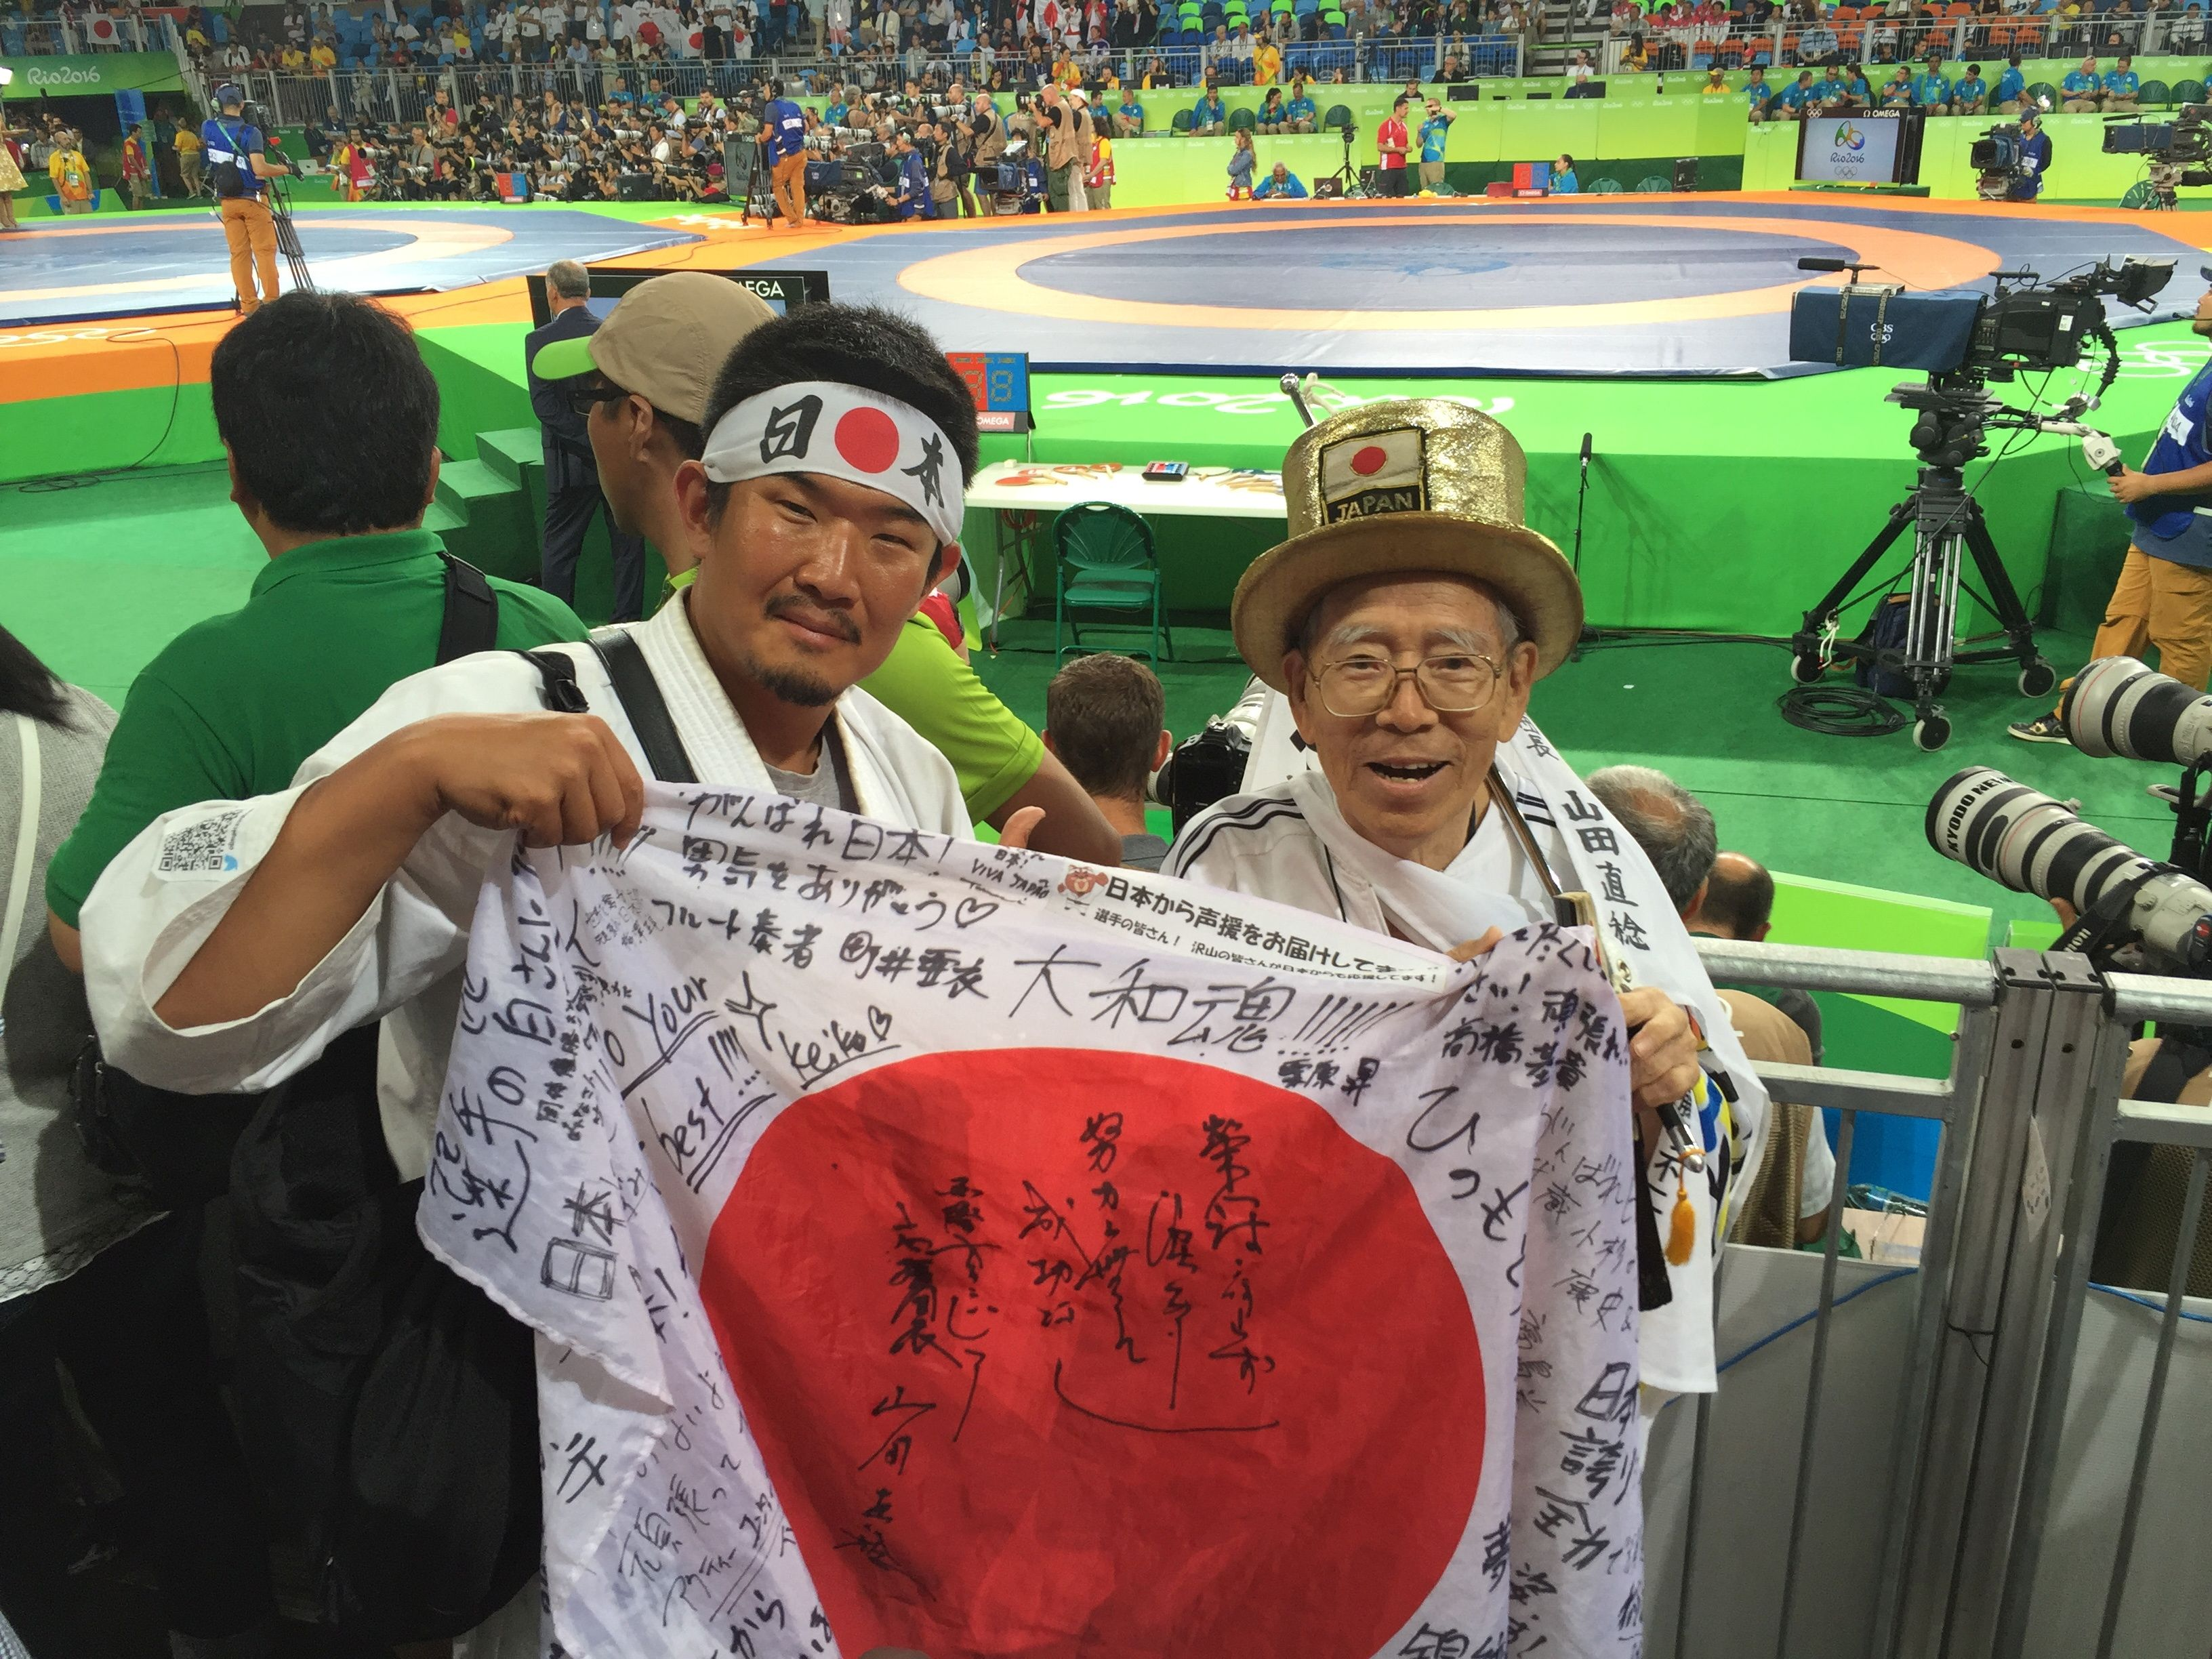 Kazunori Takishima poses with a Japanese fan at a wrestling venue of the Rio 2016 Olympic Games in Rio de Janeiro, Brazil, August 18, 2016.   Kazunori Takishima/Handout via REUTERS